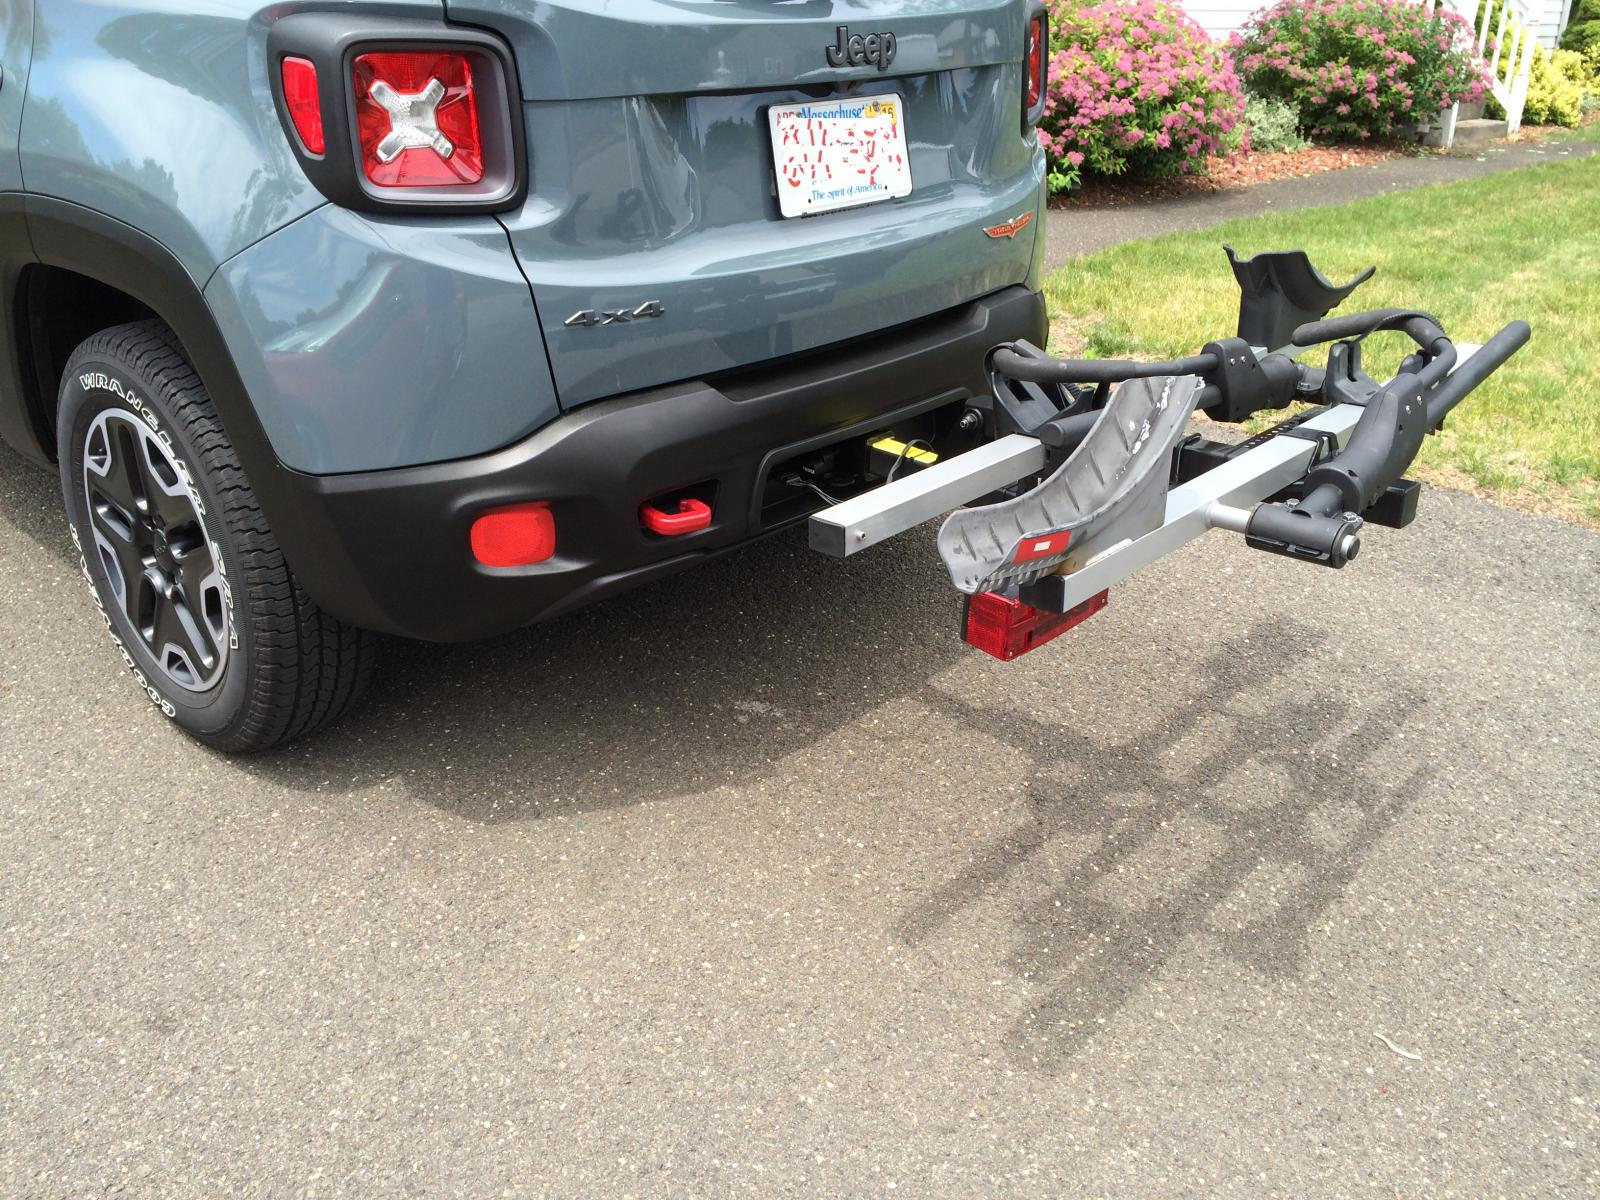 Bike Rack For Jeep Renegade >> Hitch Bike Rack Jeep Renegade Forum